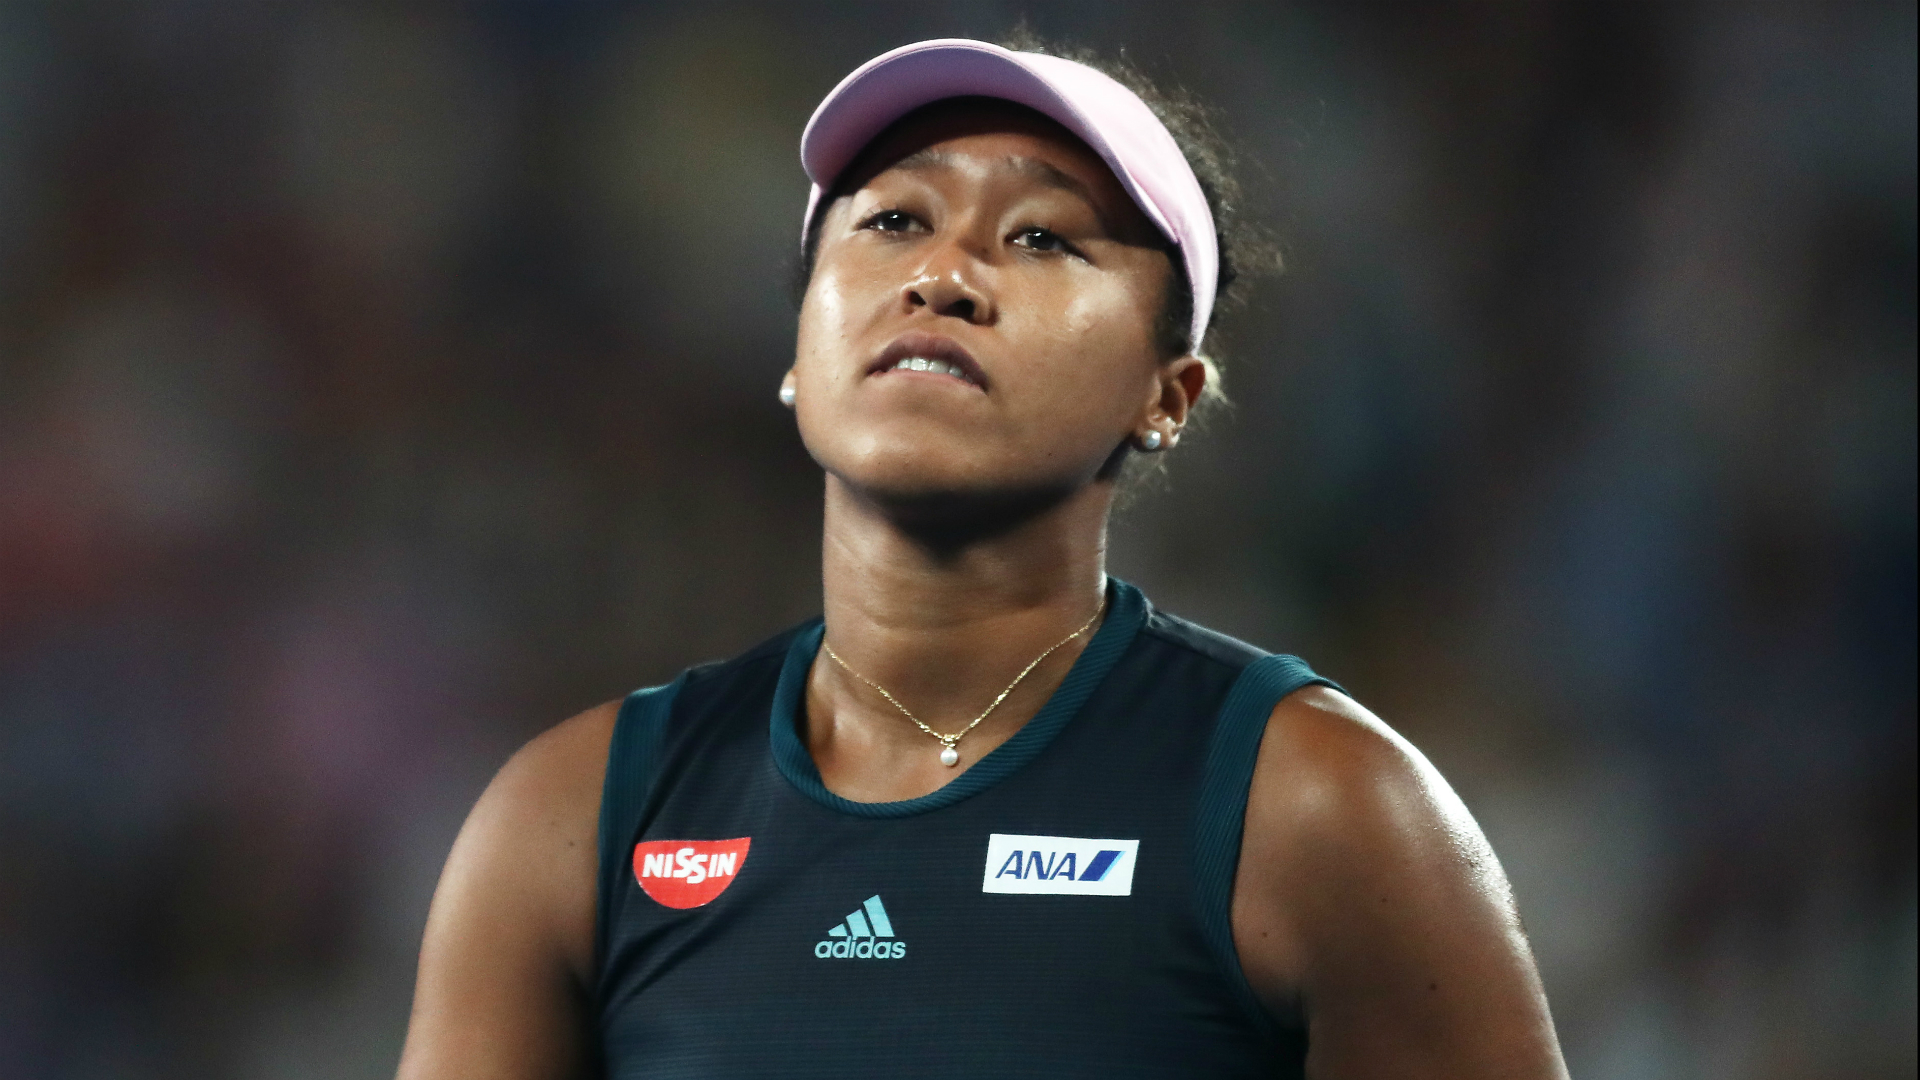 World No 1 Osaka adds new face to her team